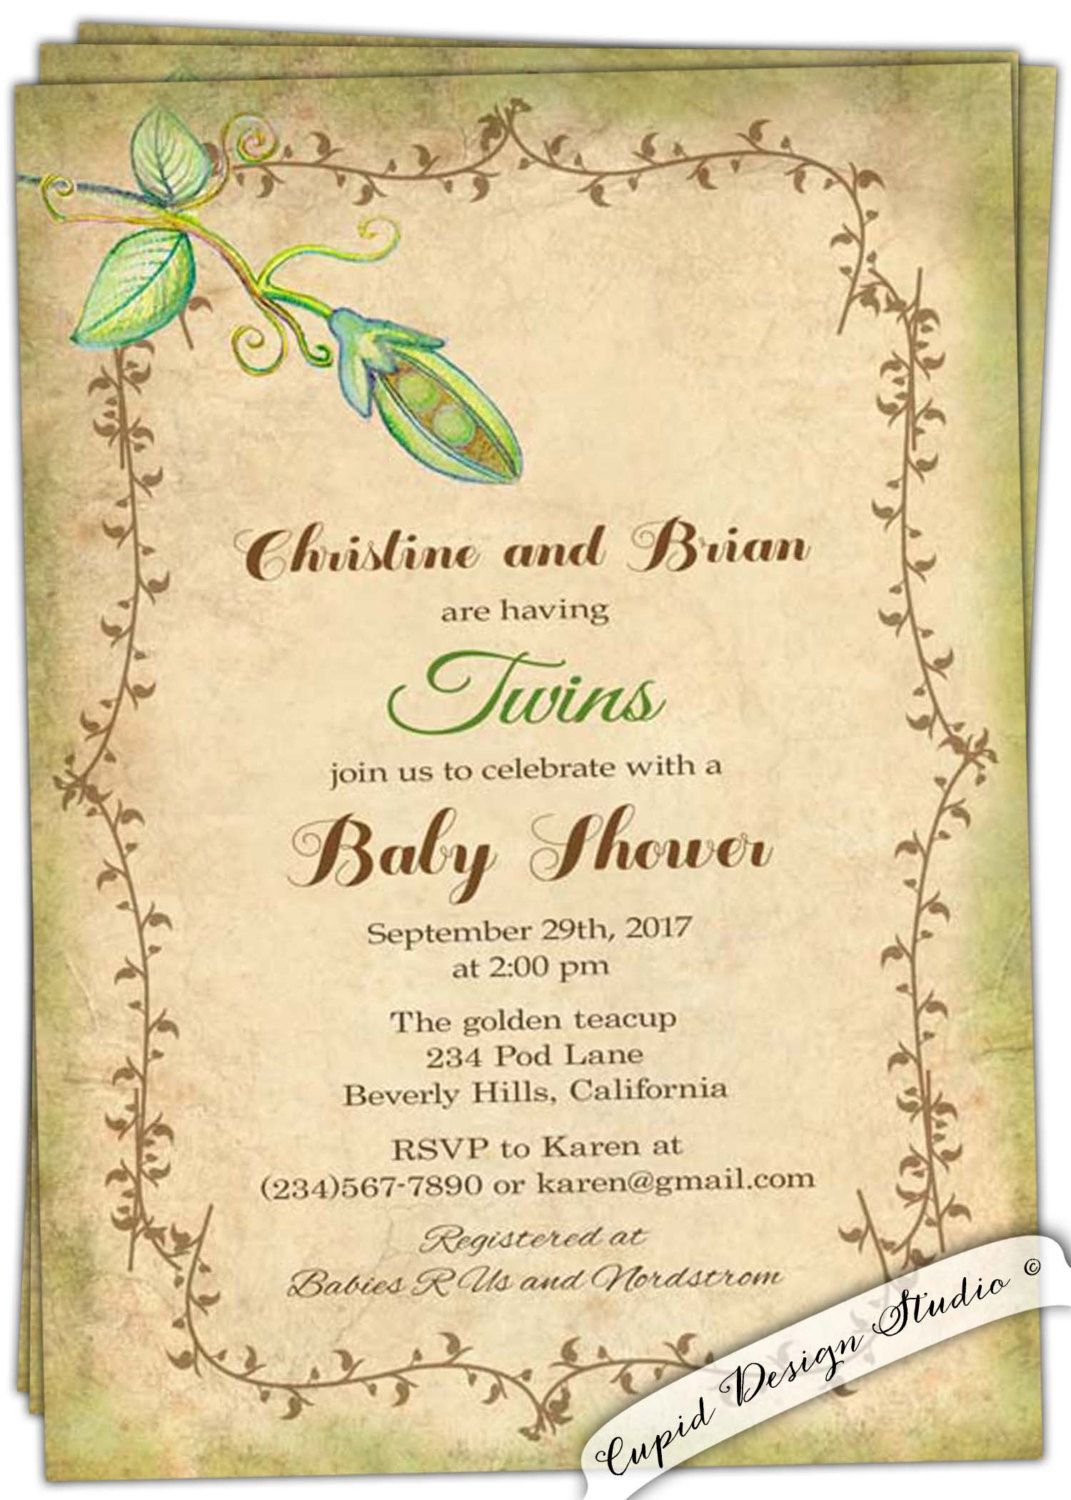 Peas in a pod baby shower invitation - Two peas in a pod baby shower ...